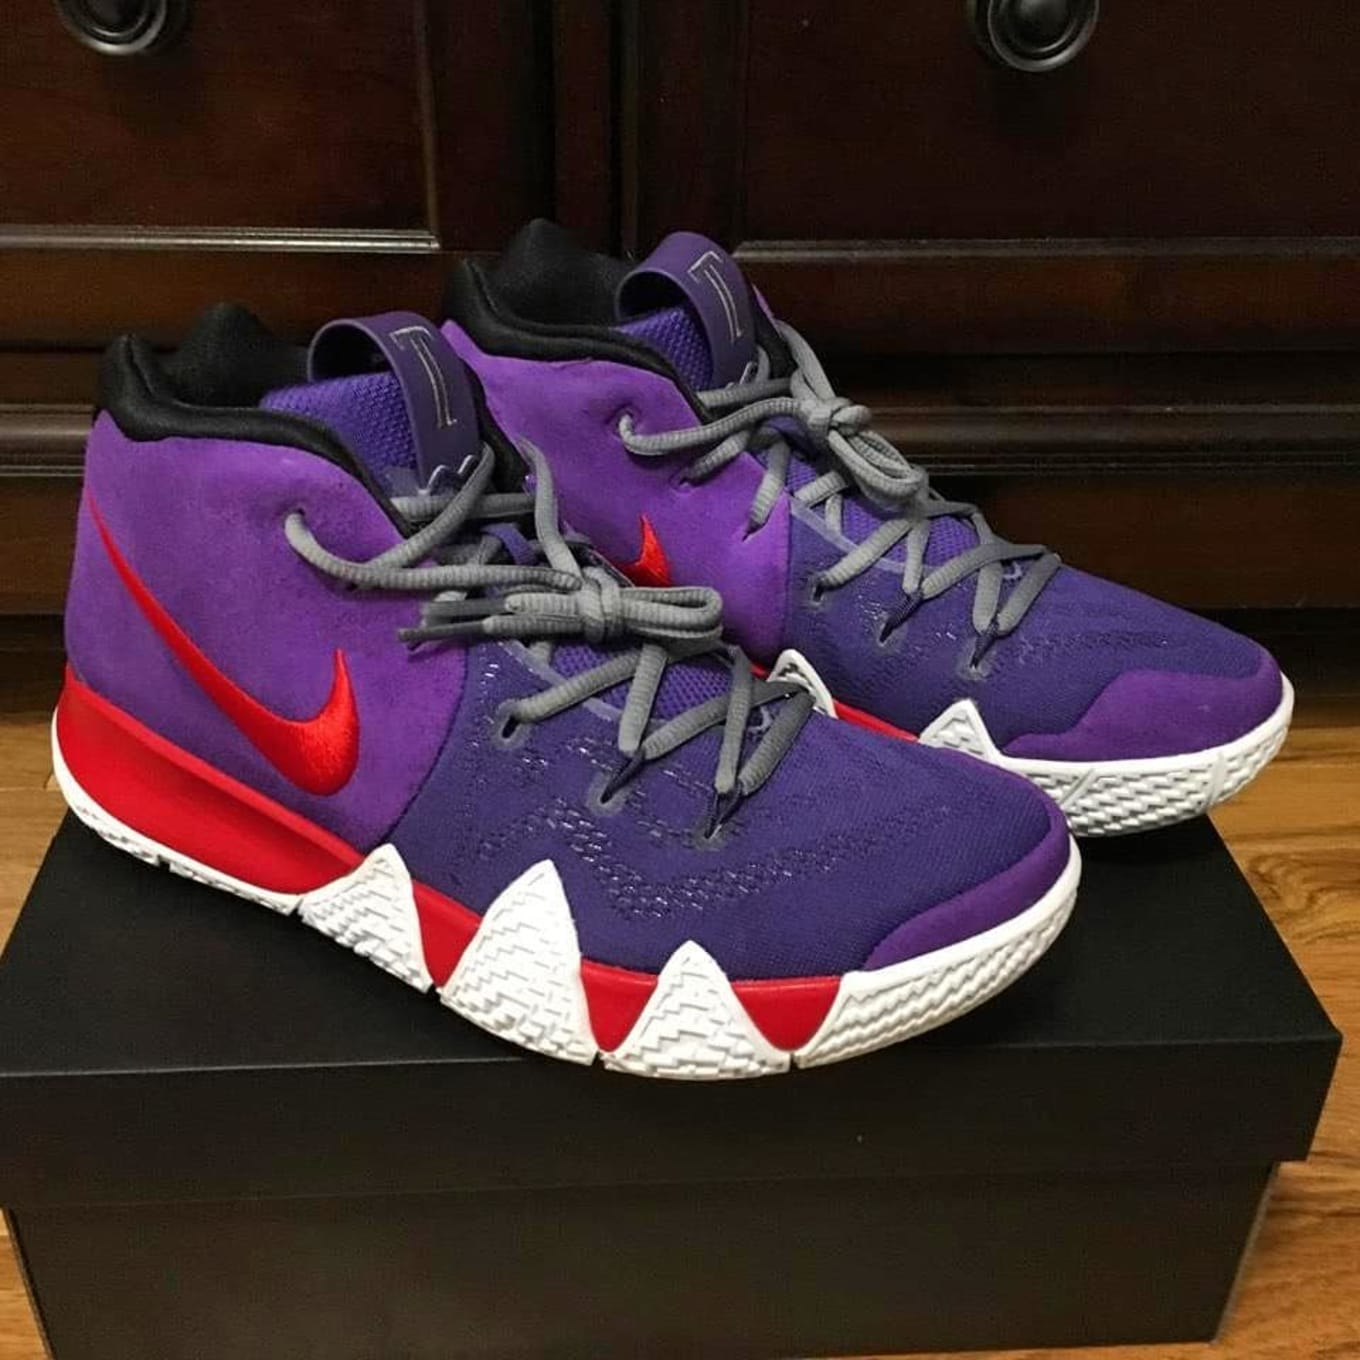 new arrive 26b9b 1da7f NIKEiD Kyrie 4 Designs | Sole Collector